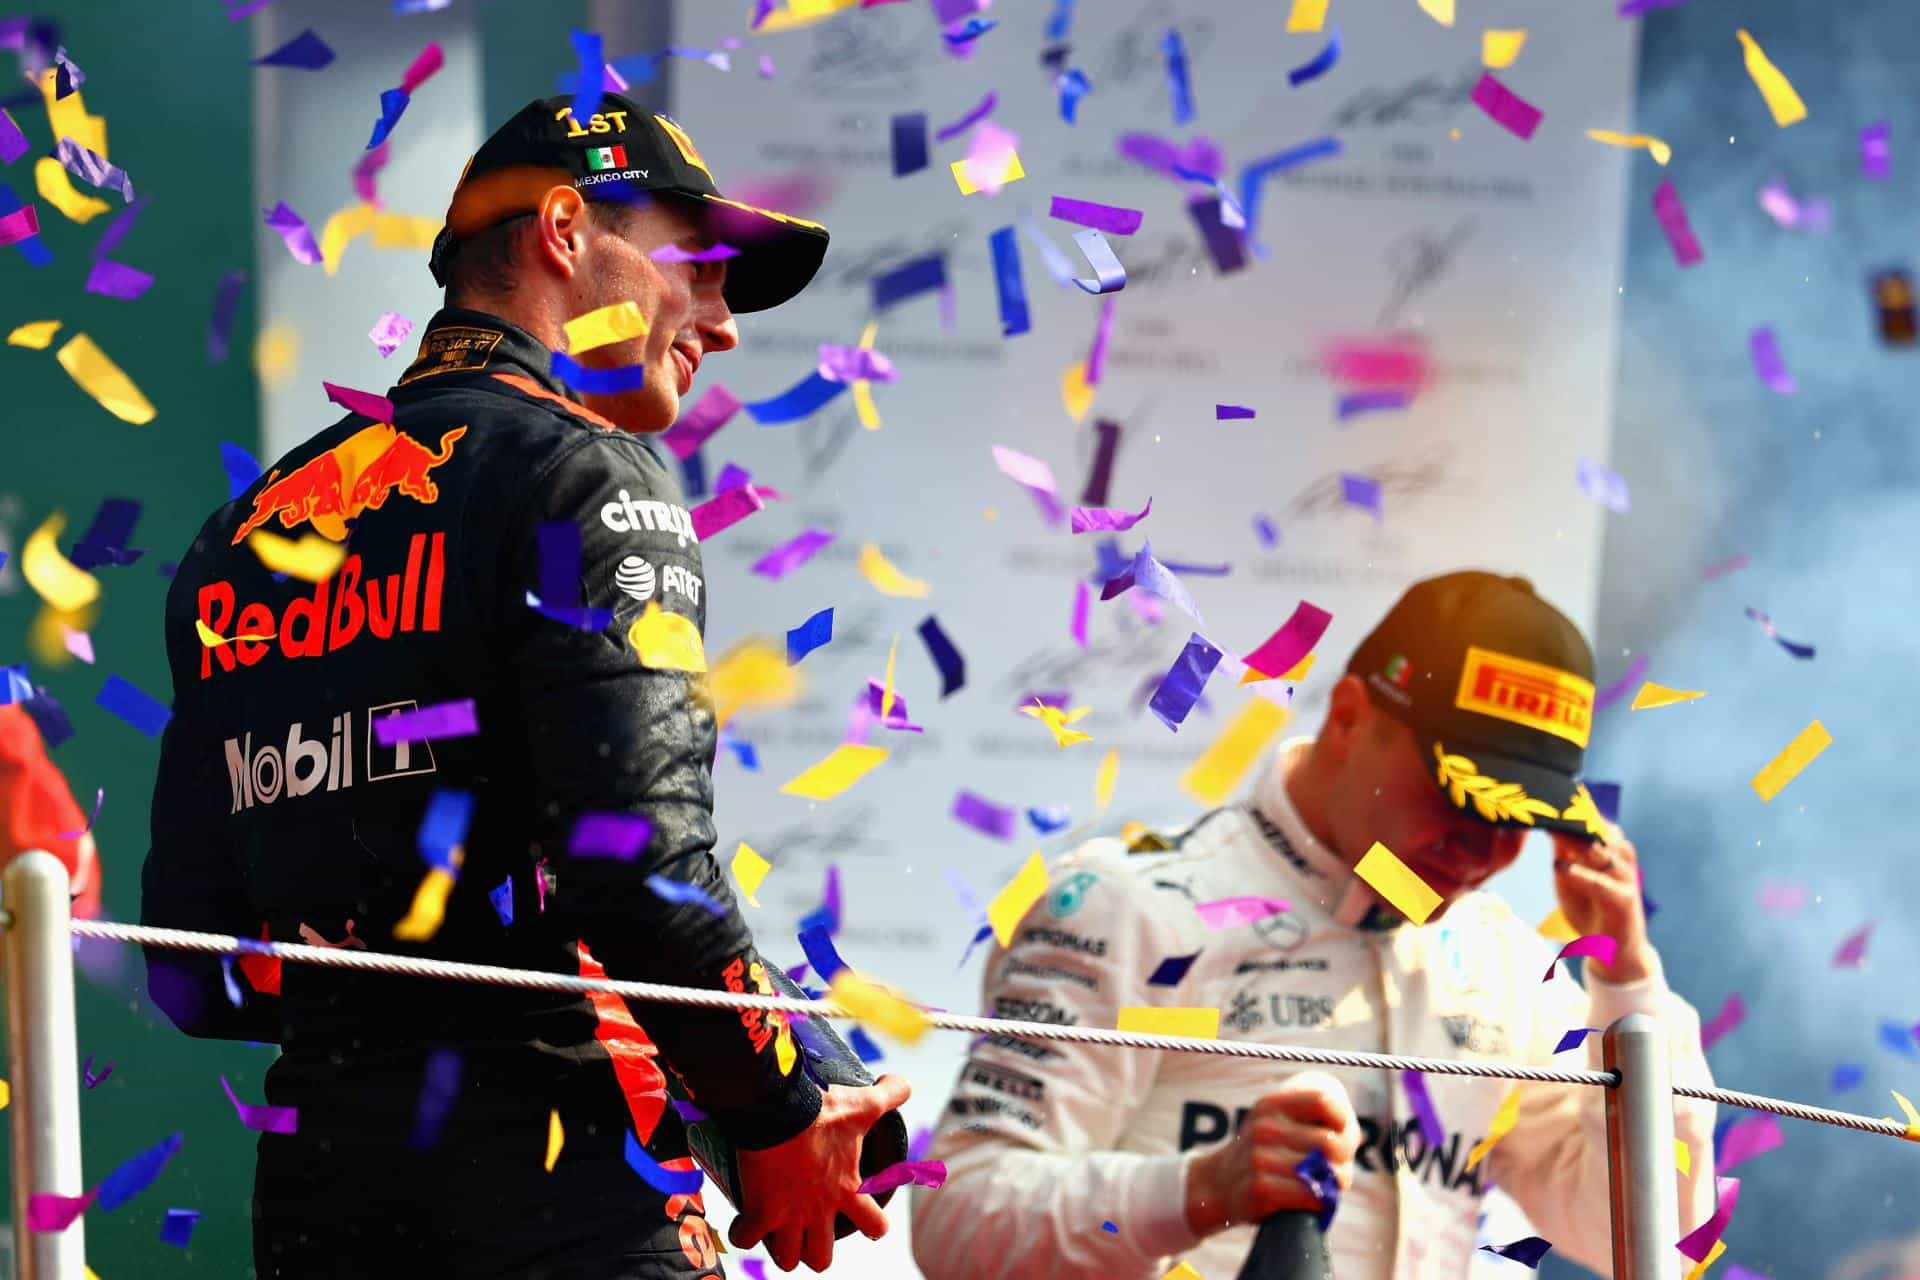 Verstappen Bottas Mexican GP F1 2017 podium Photo Red Bull